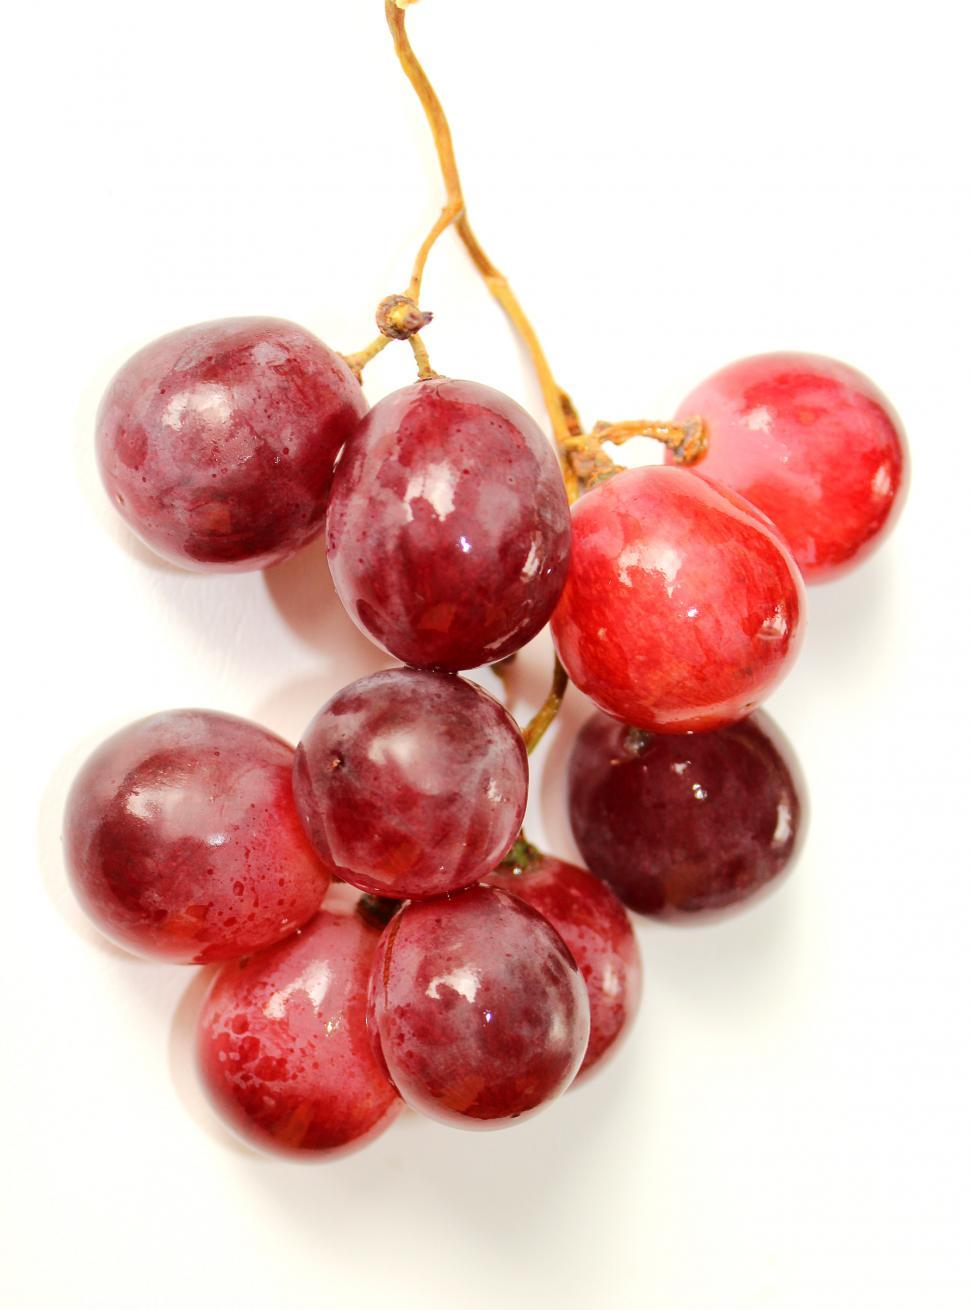 Download Free Stock HD Photo of Bunch of red globe grapes on white Online